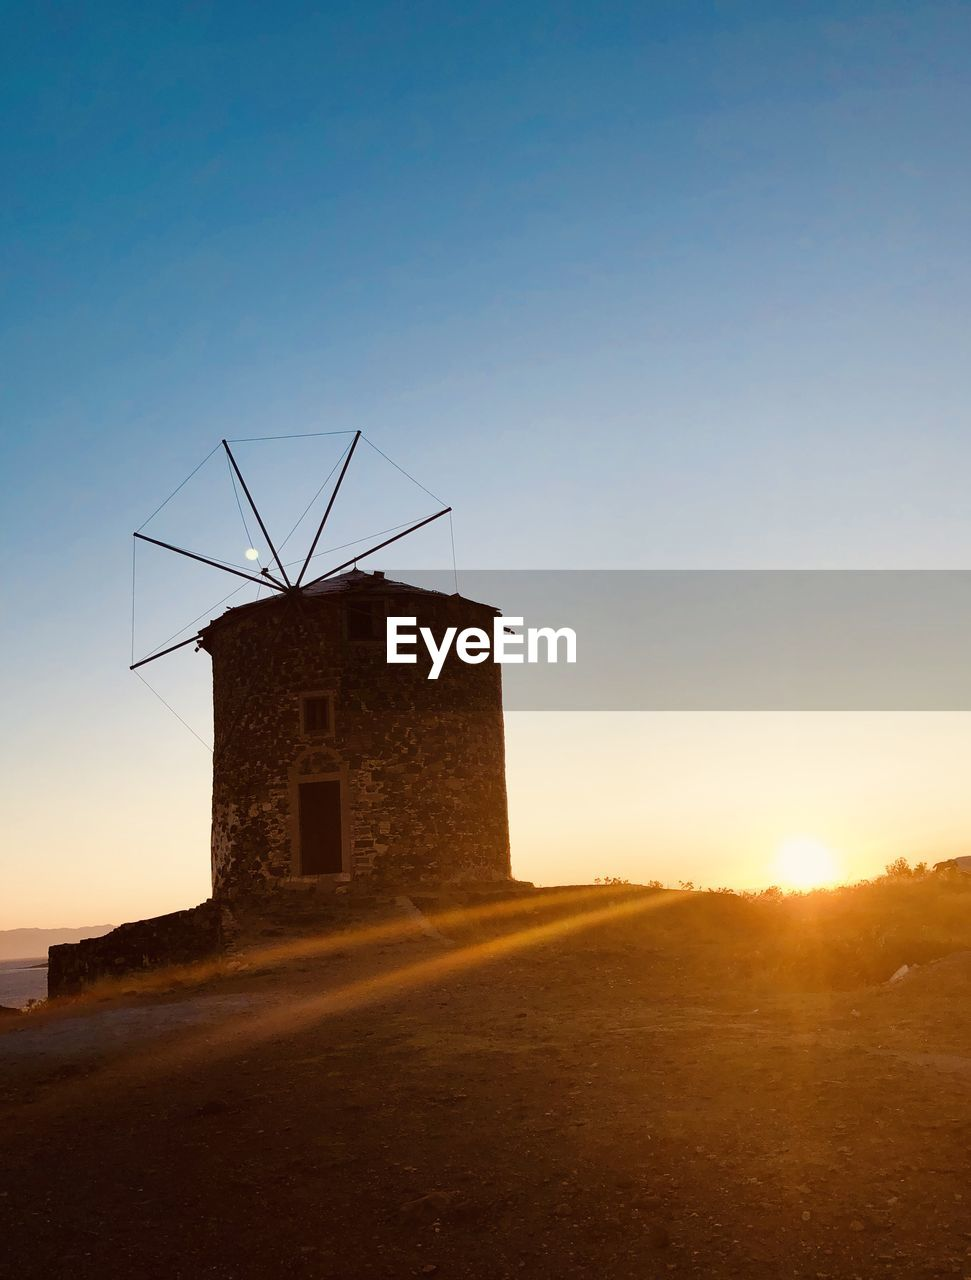 architecture, sky, built structure, building exterior, sunset, environmental conservation, environment, nature, turbine, wind turbine, no people, fuel and power generation, sunlight, wind power, copy space, clear sky, field, land, outdoors, landscape, ruined